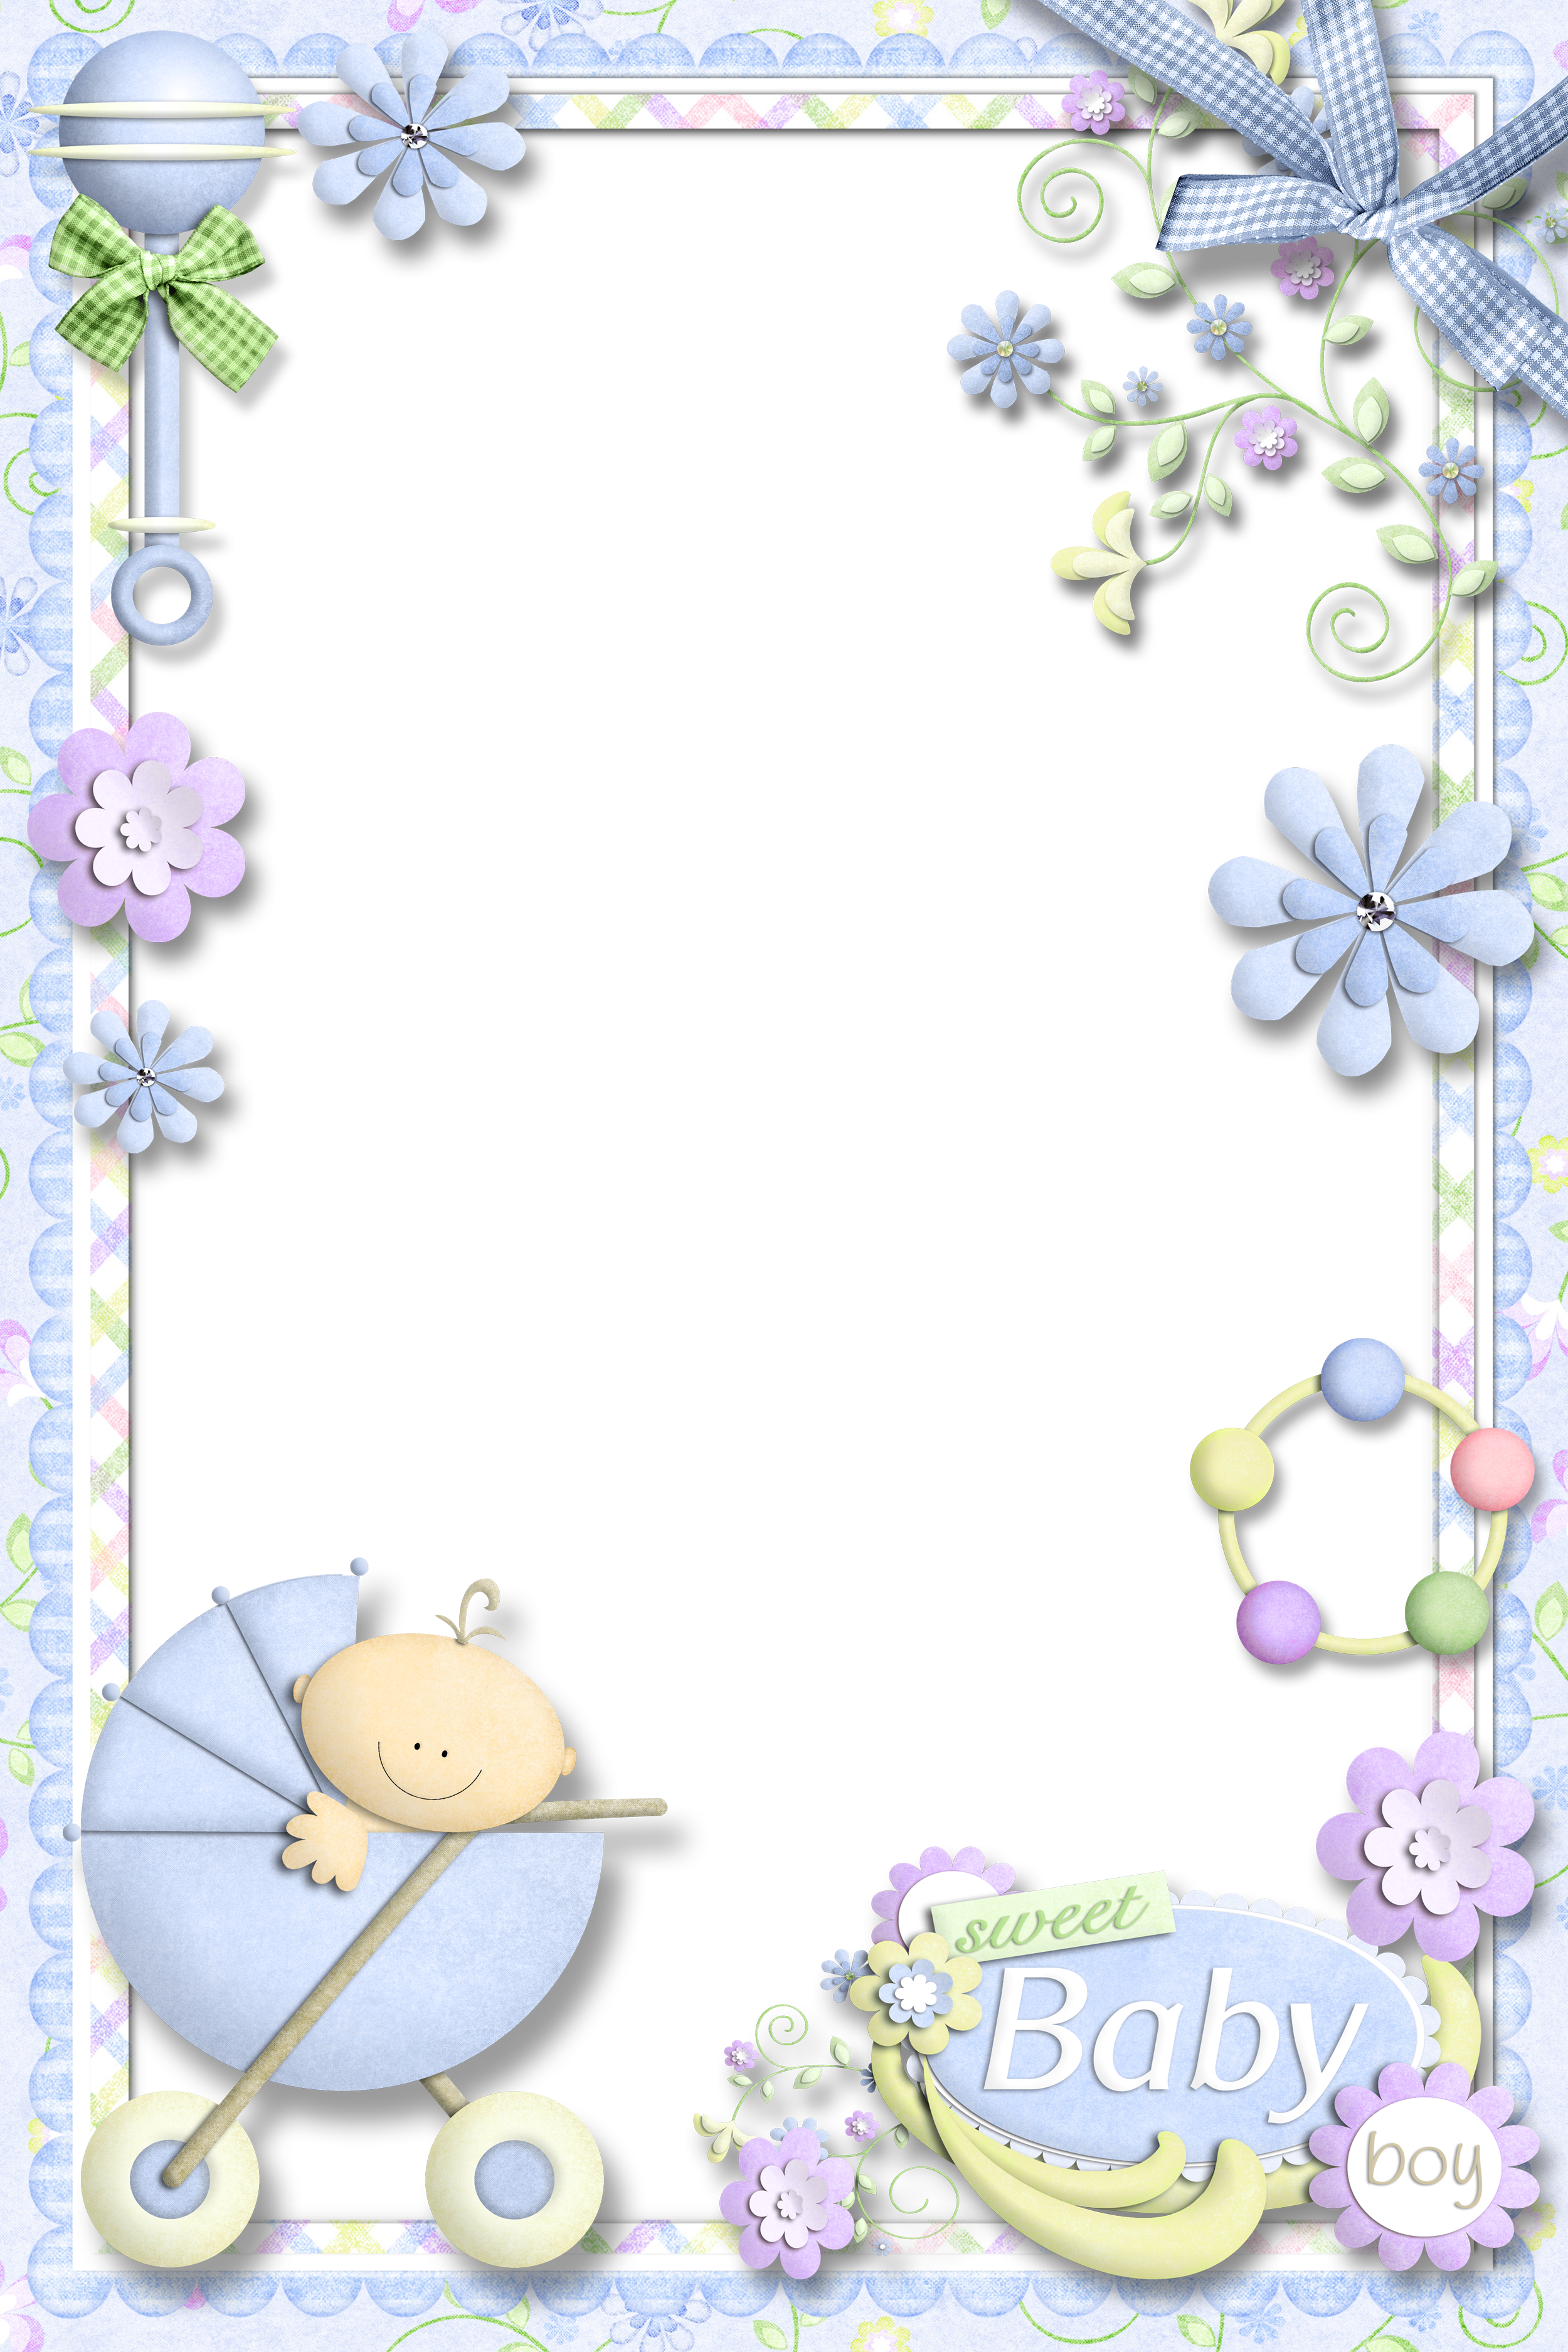 Frame clipart baby boy. Photo for stuff to